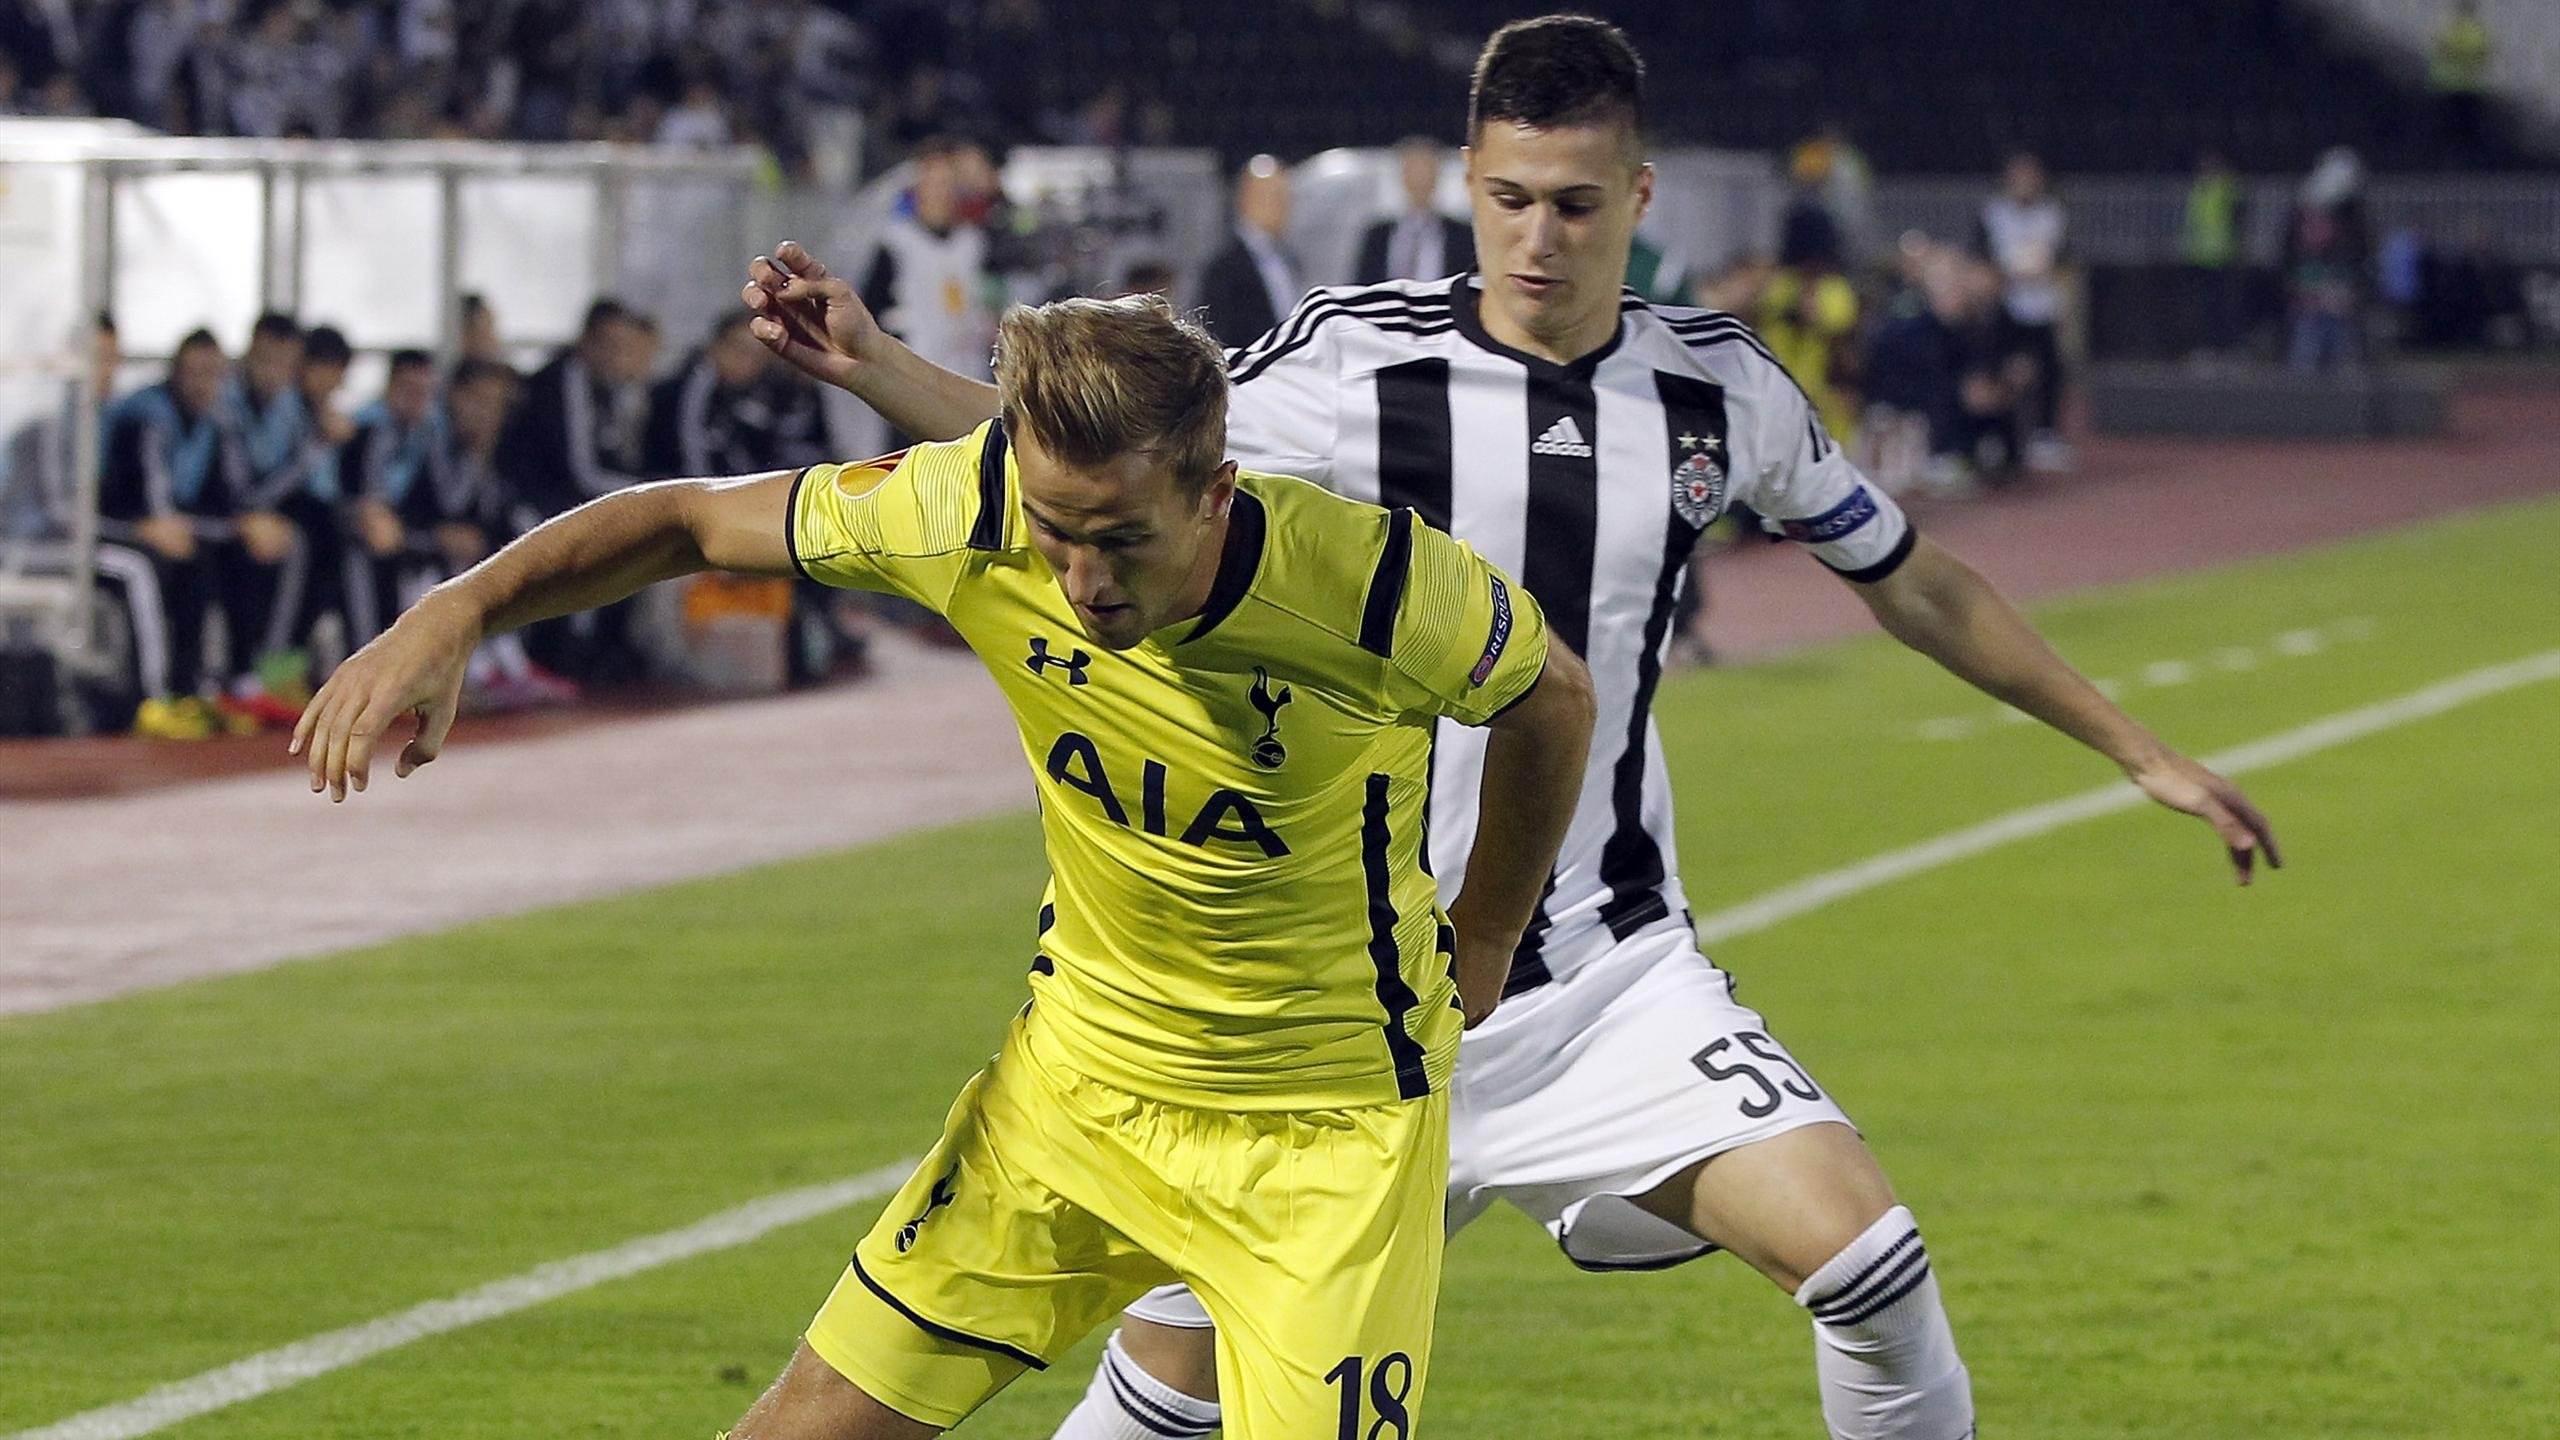 Video: Partizan vs Tottenham Hotspur